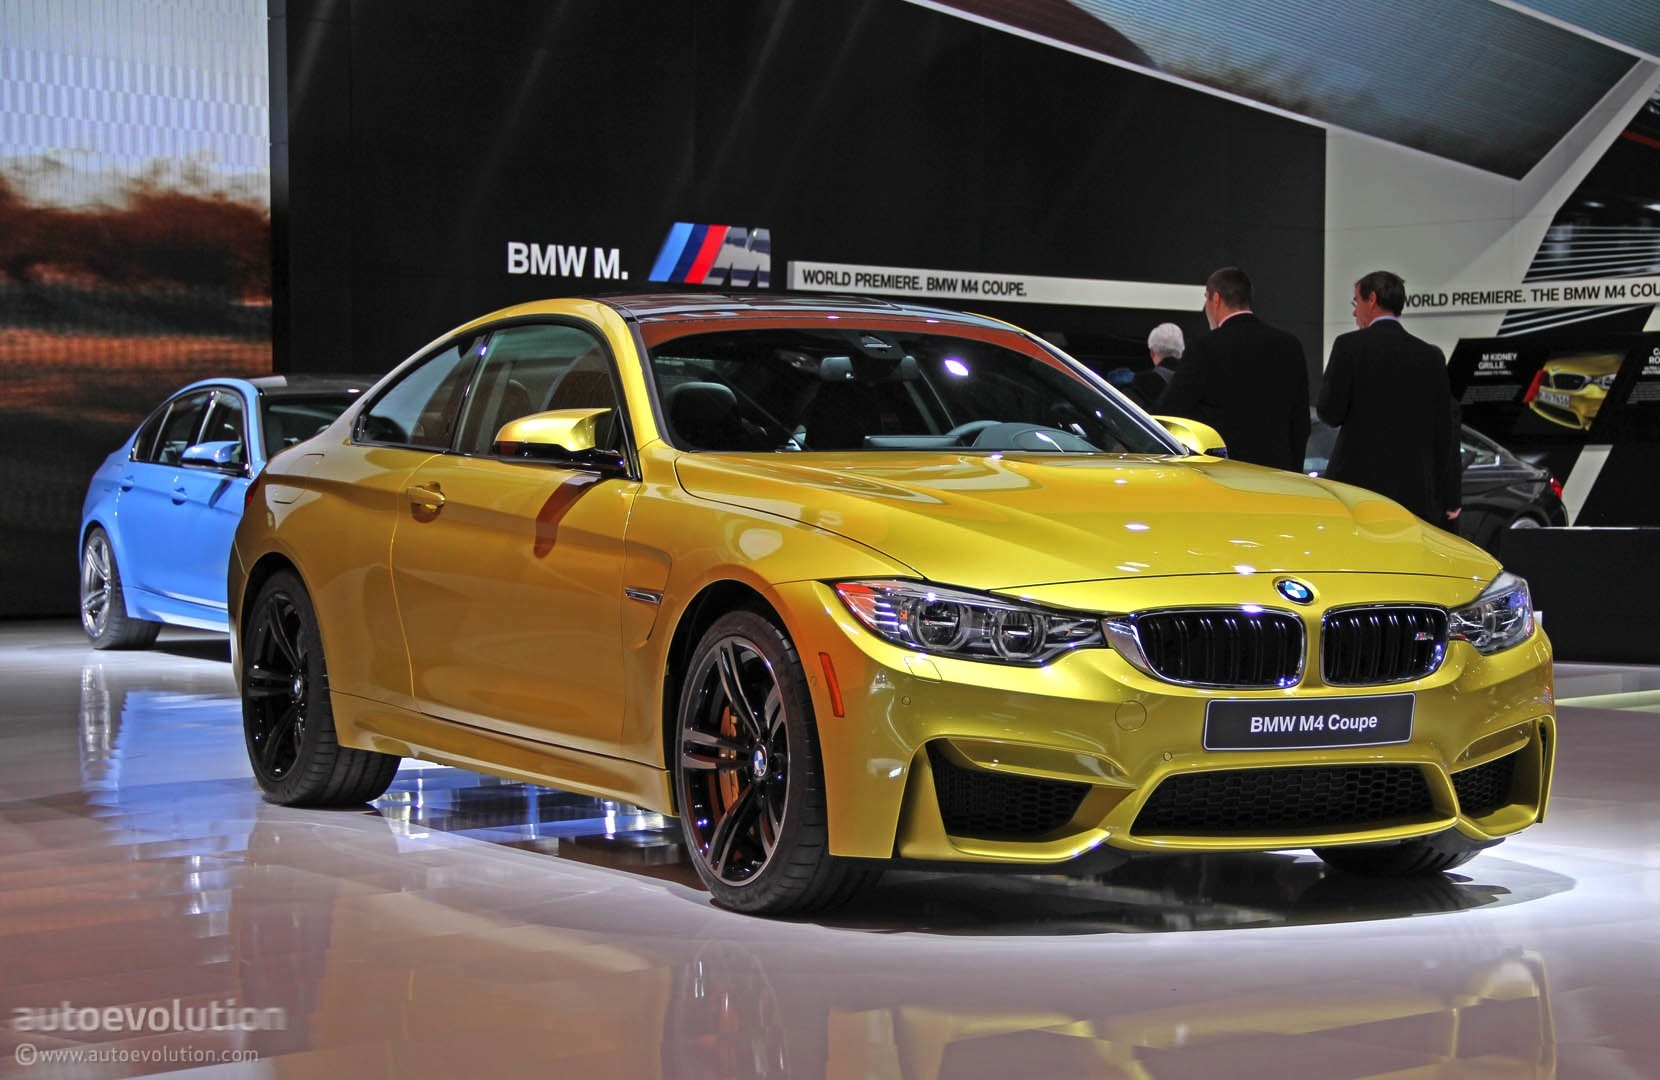 The First Ever BMW M4 Debuts at 2014 Detroit Auto Show [Live Photos] - autoevolution